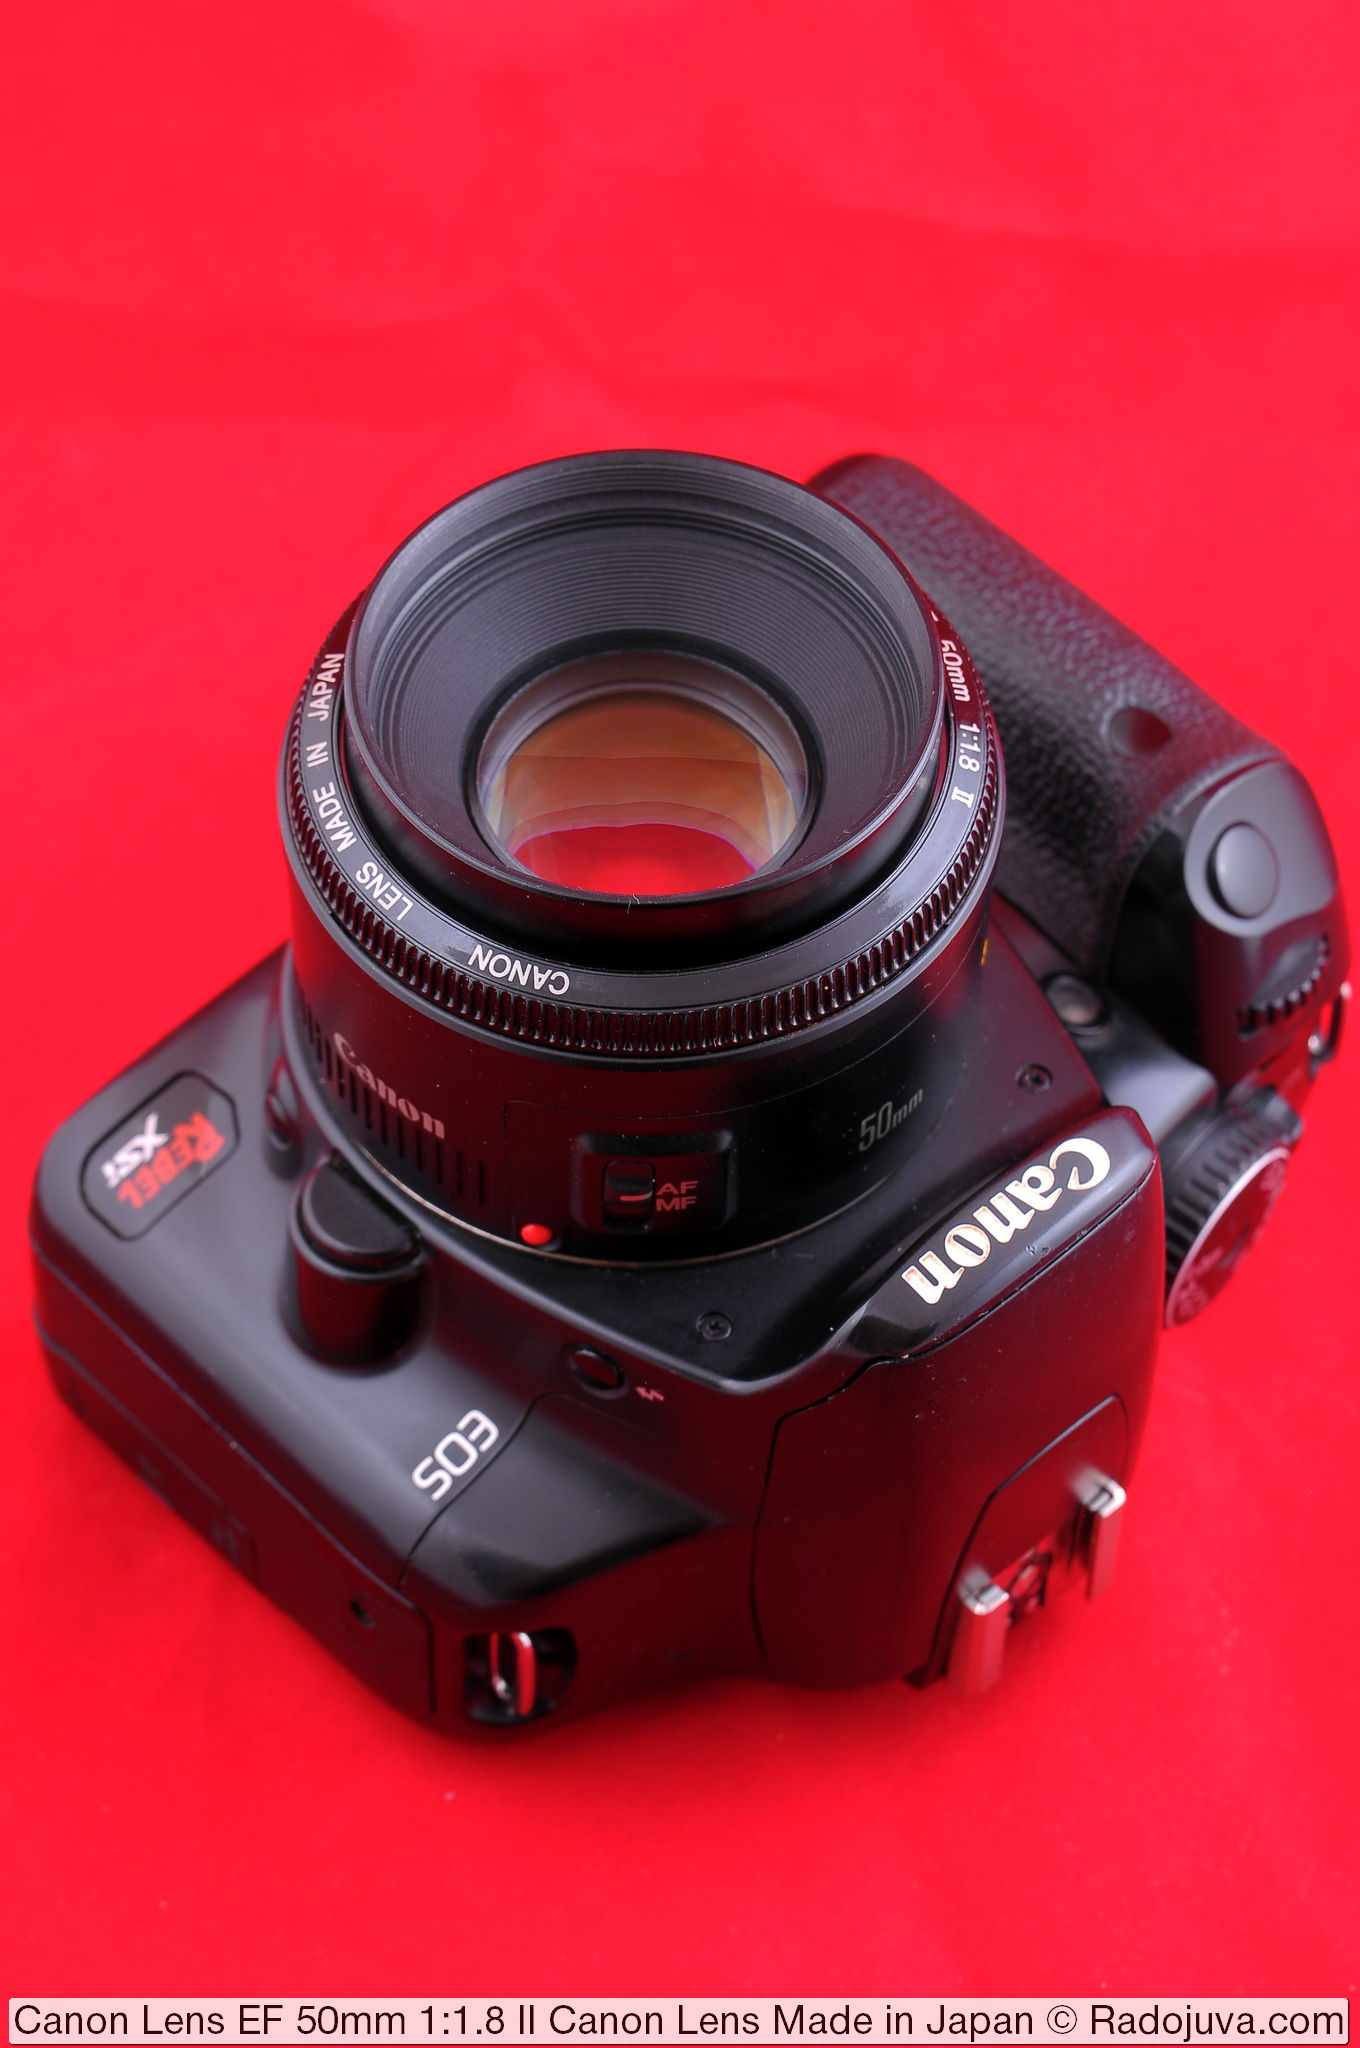 Canon Lens EF 50mm 1:1.8 II, версия 'Canon Lens Made in Japan'